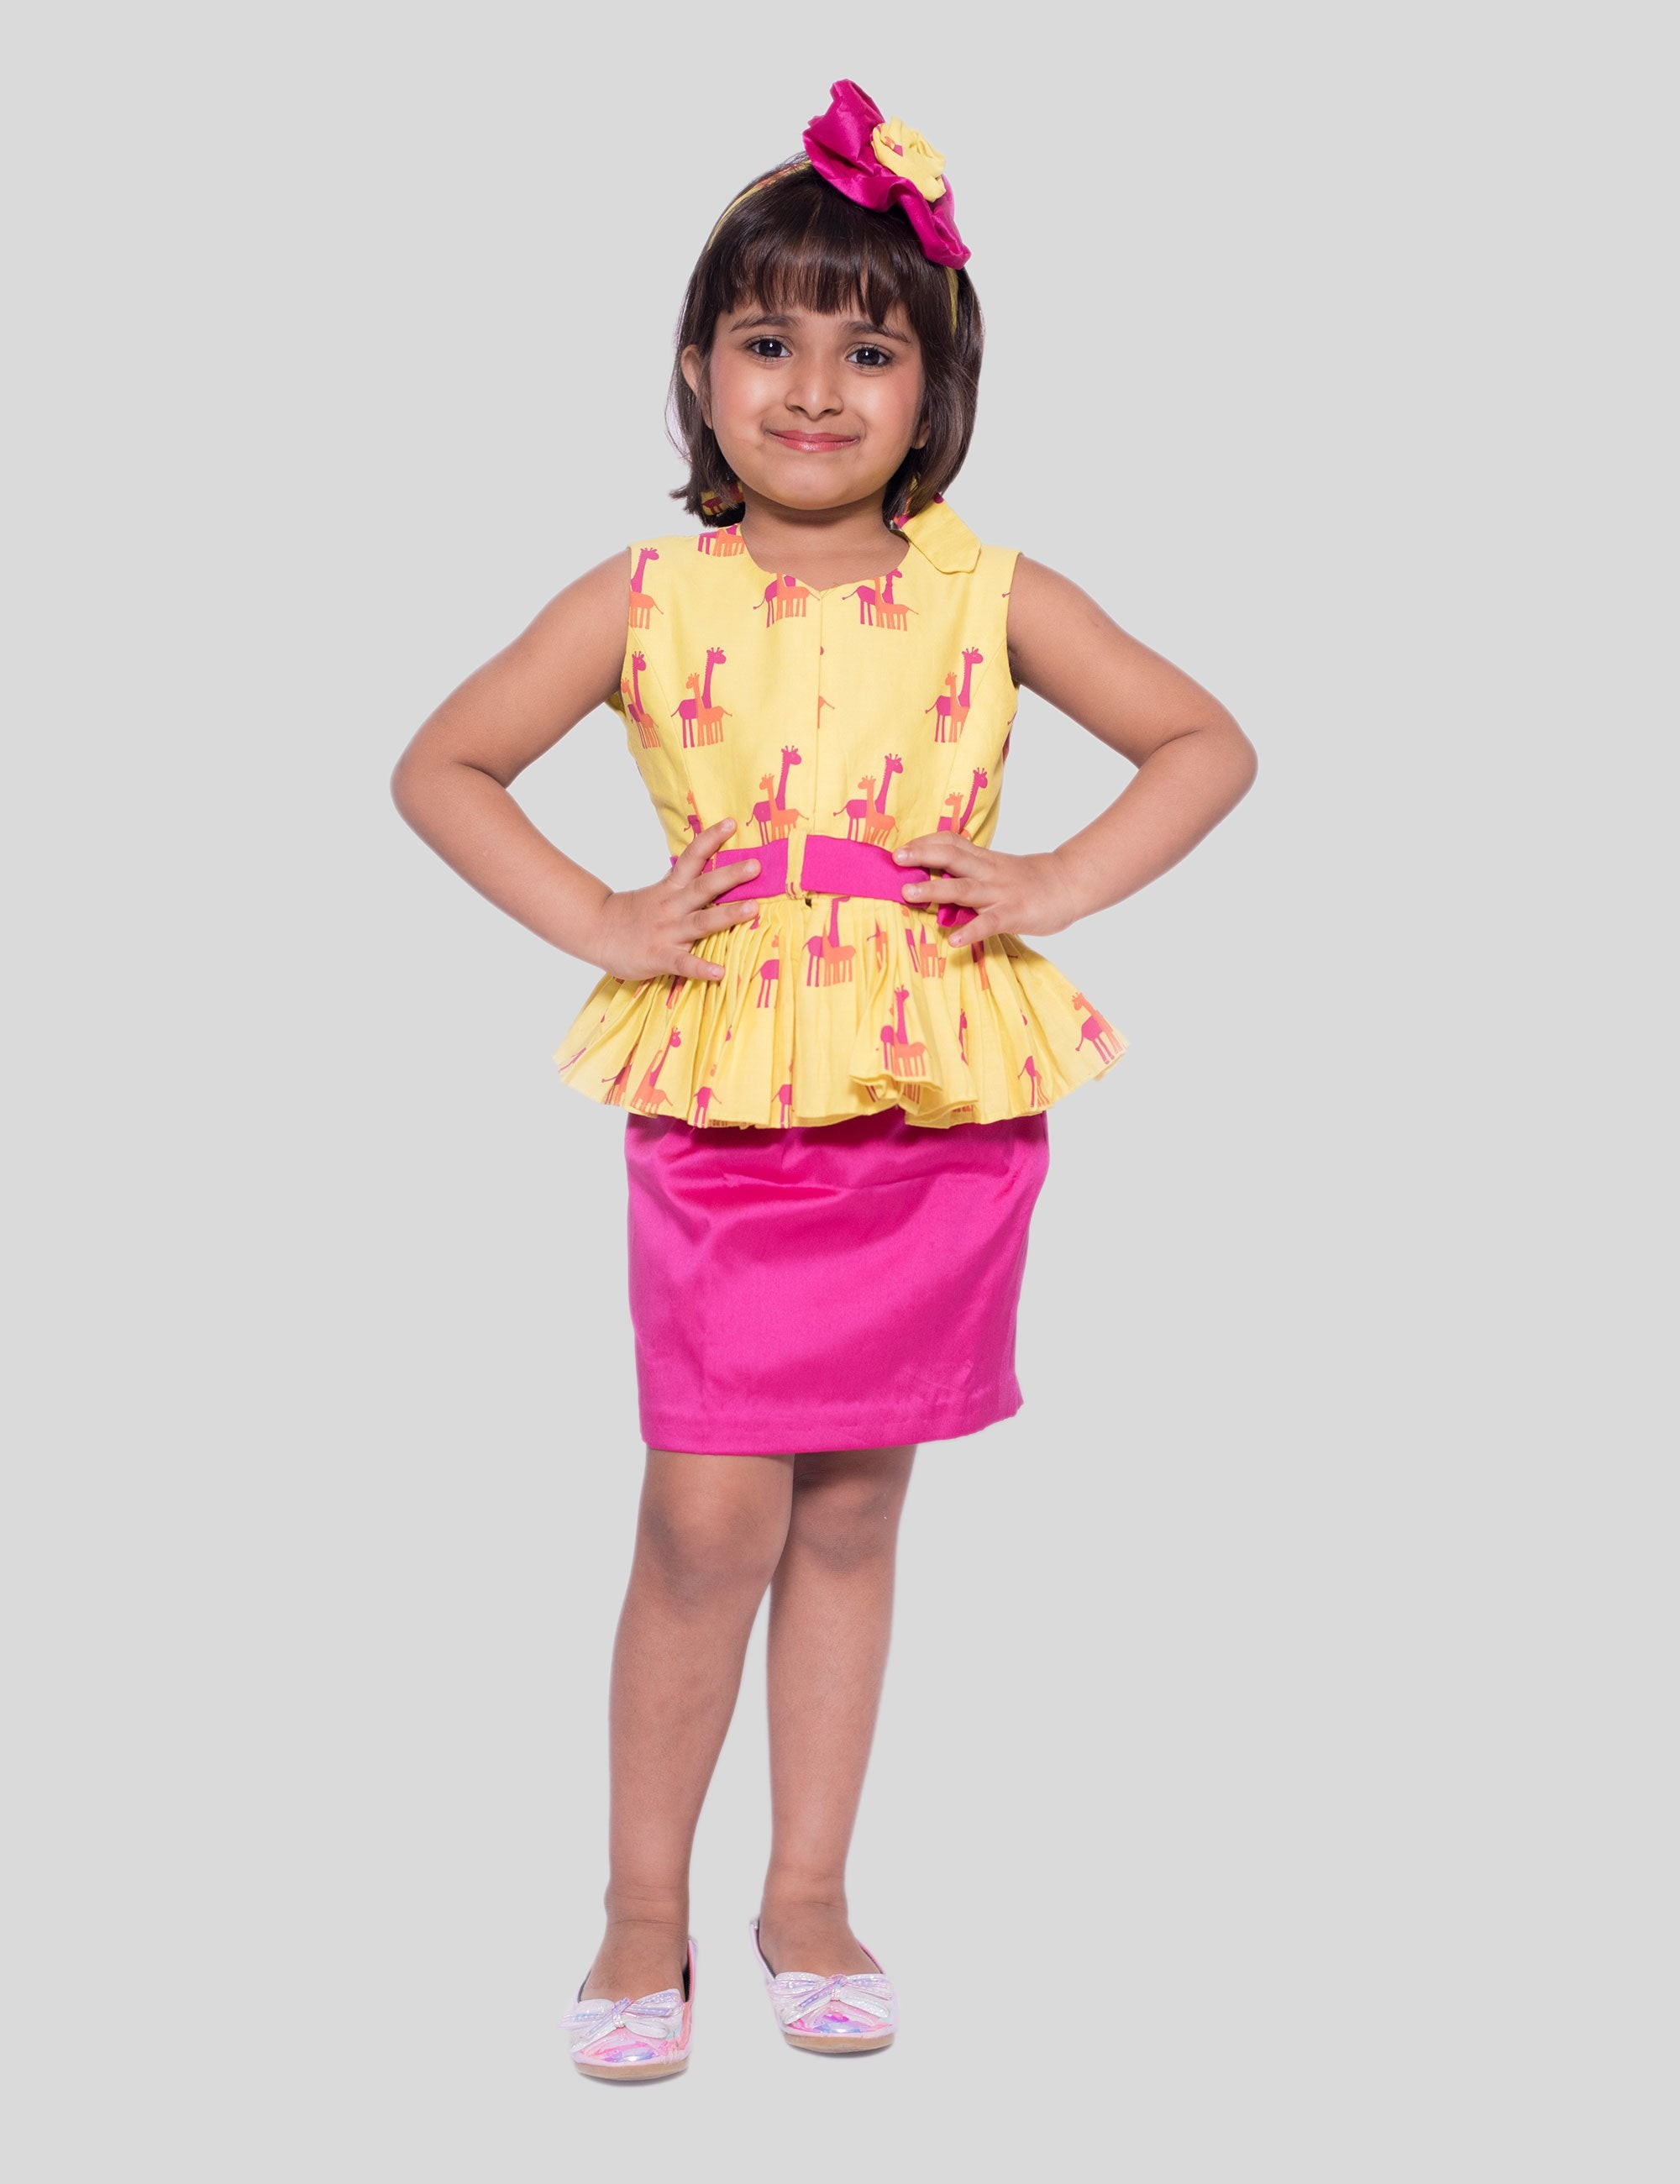 Giraffe Peplum with Skirt In Yellow-Pink for Girls